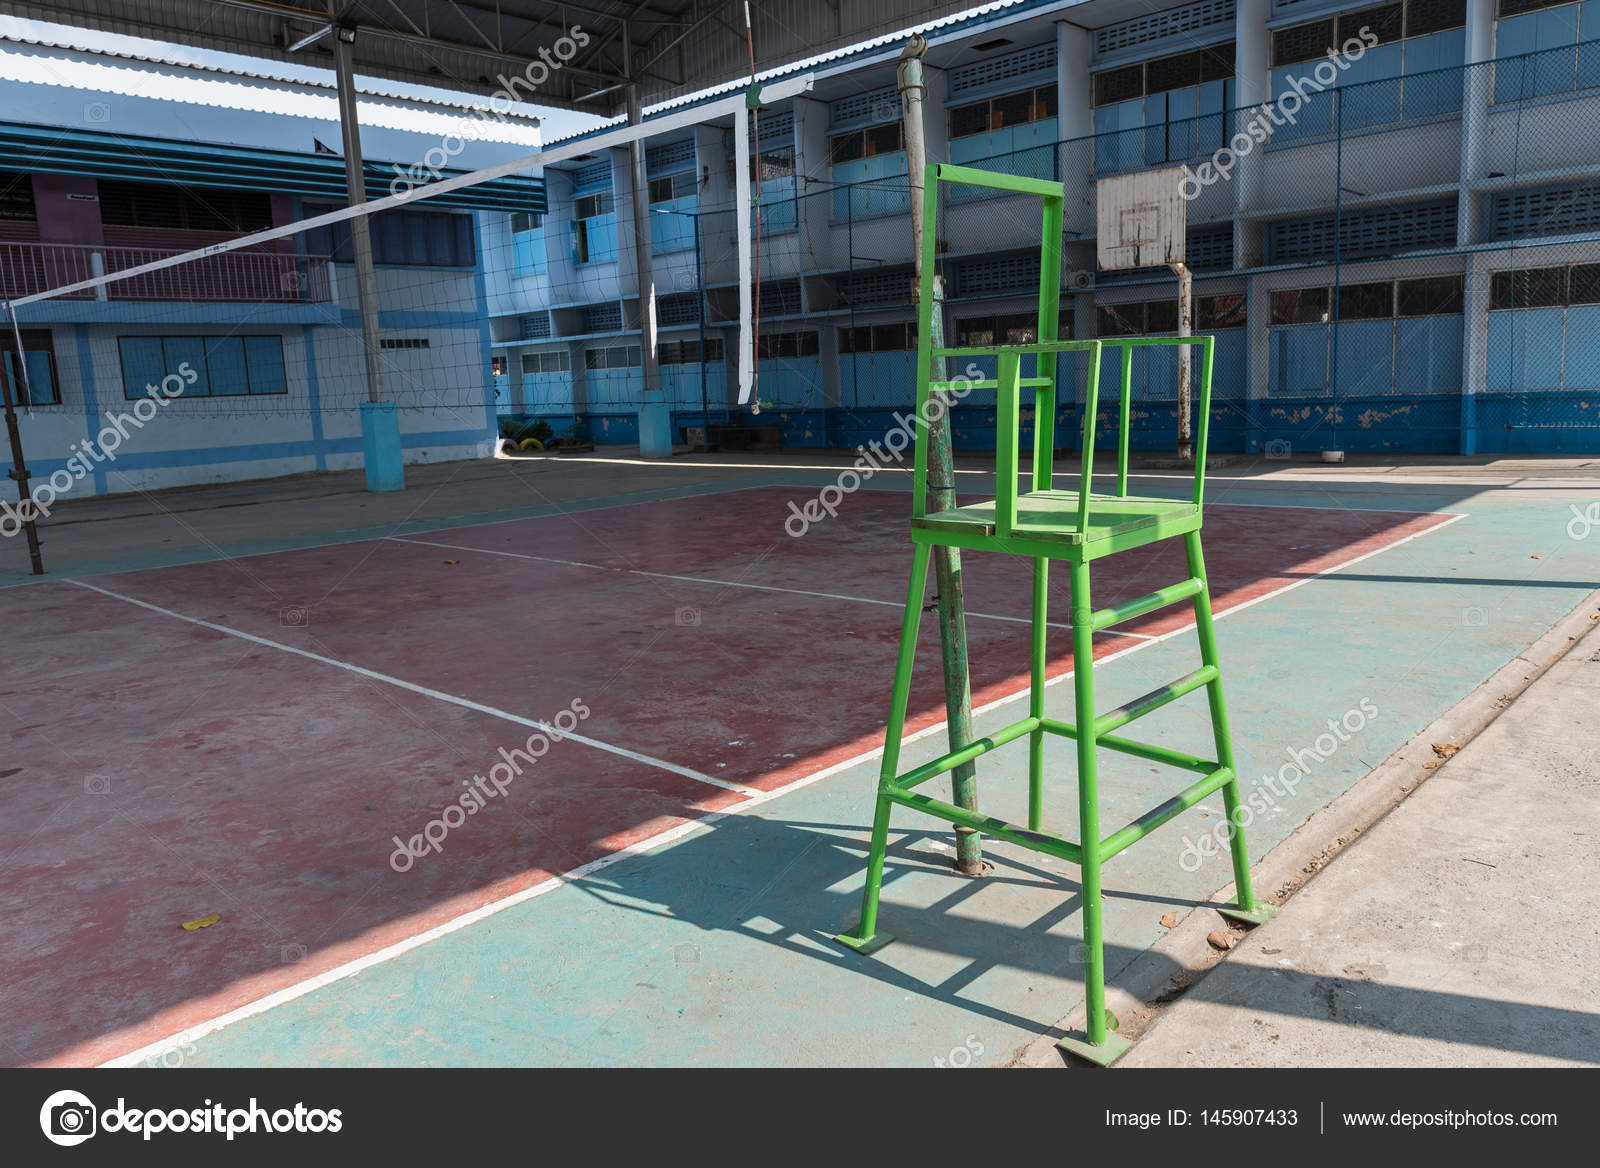 Volleyball court school gym indoor. — Stock Photo © Bubbers #145907433